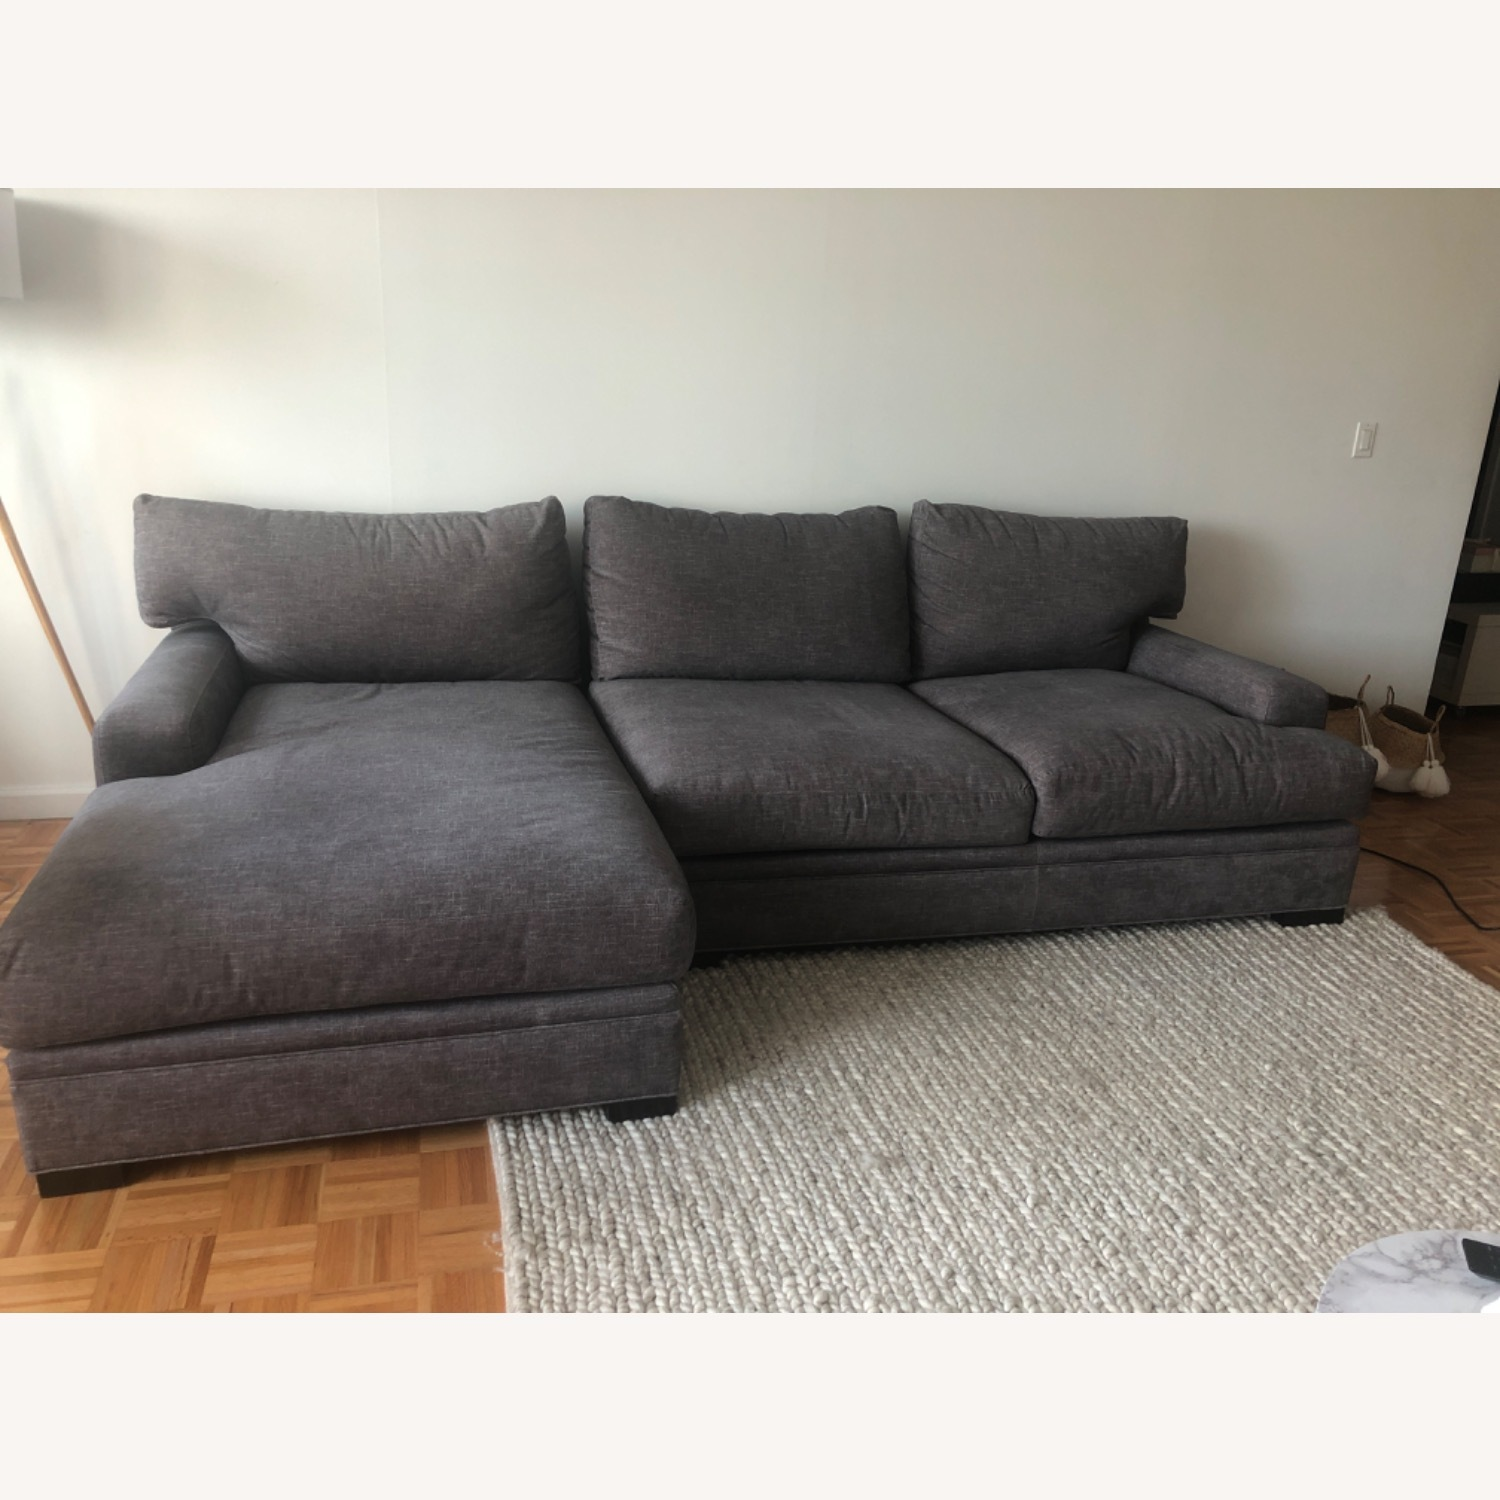 Raymour & Flanigan Love seat and LAF chaise Braelyn - image-5